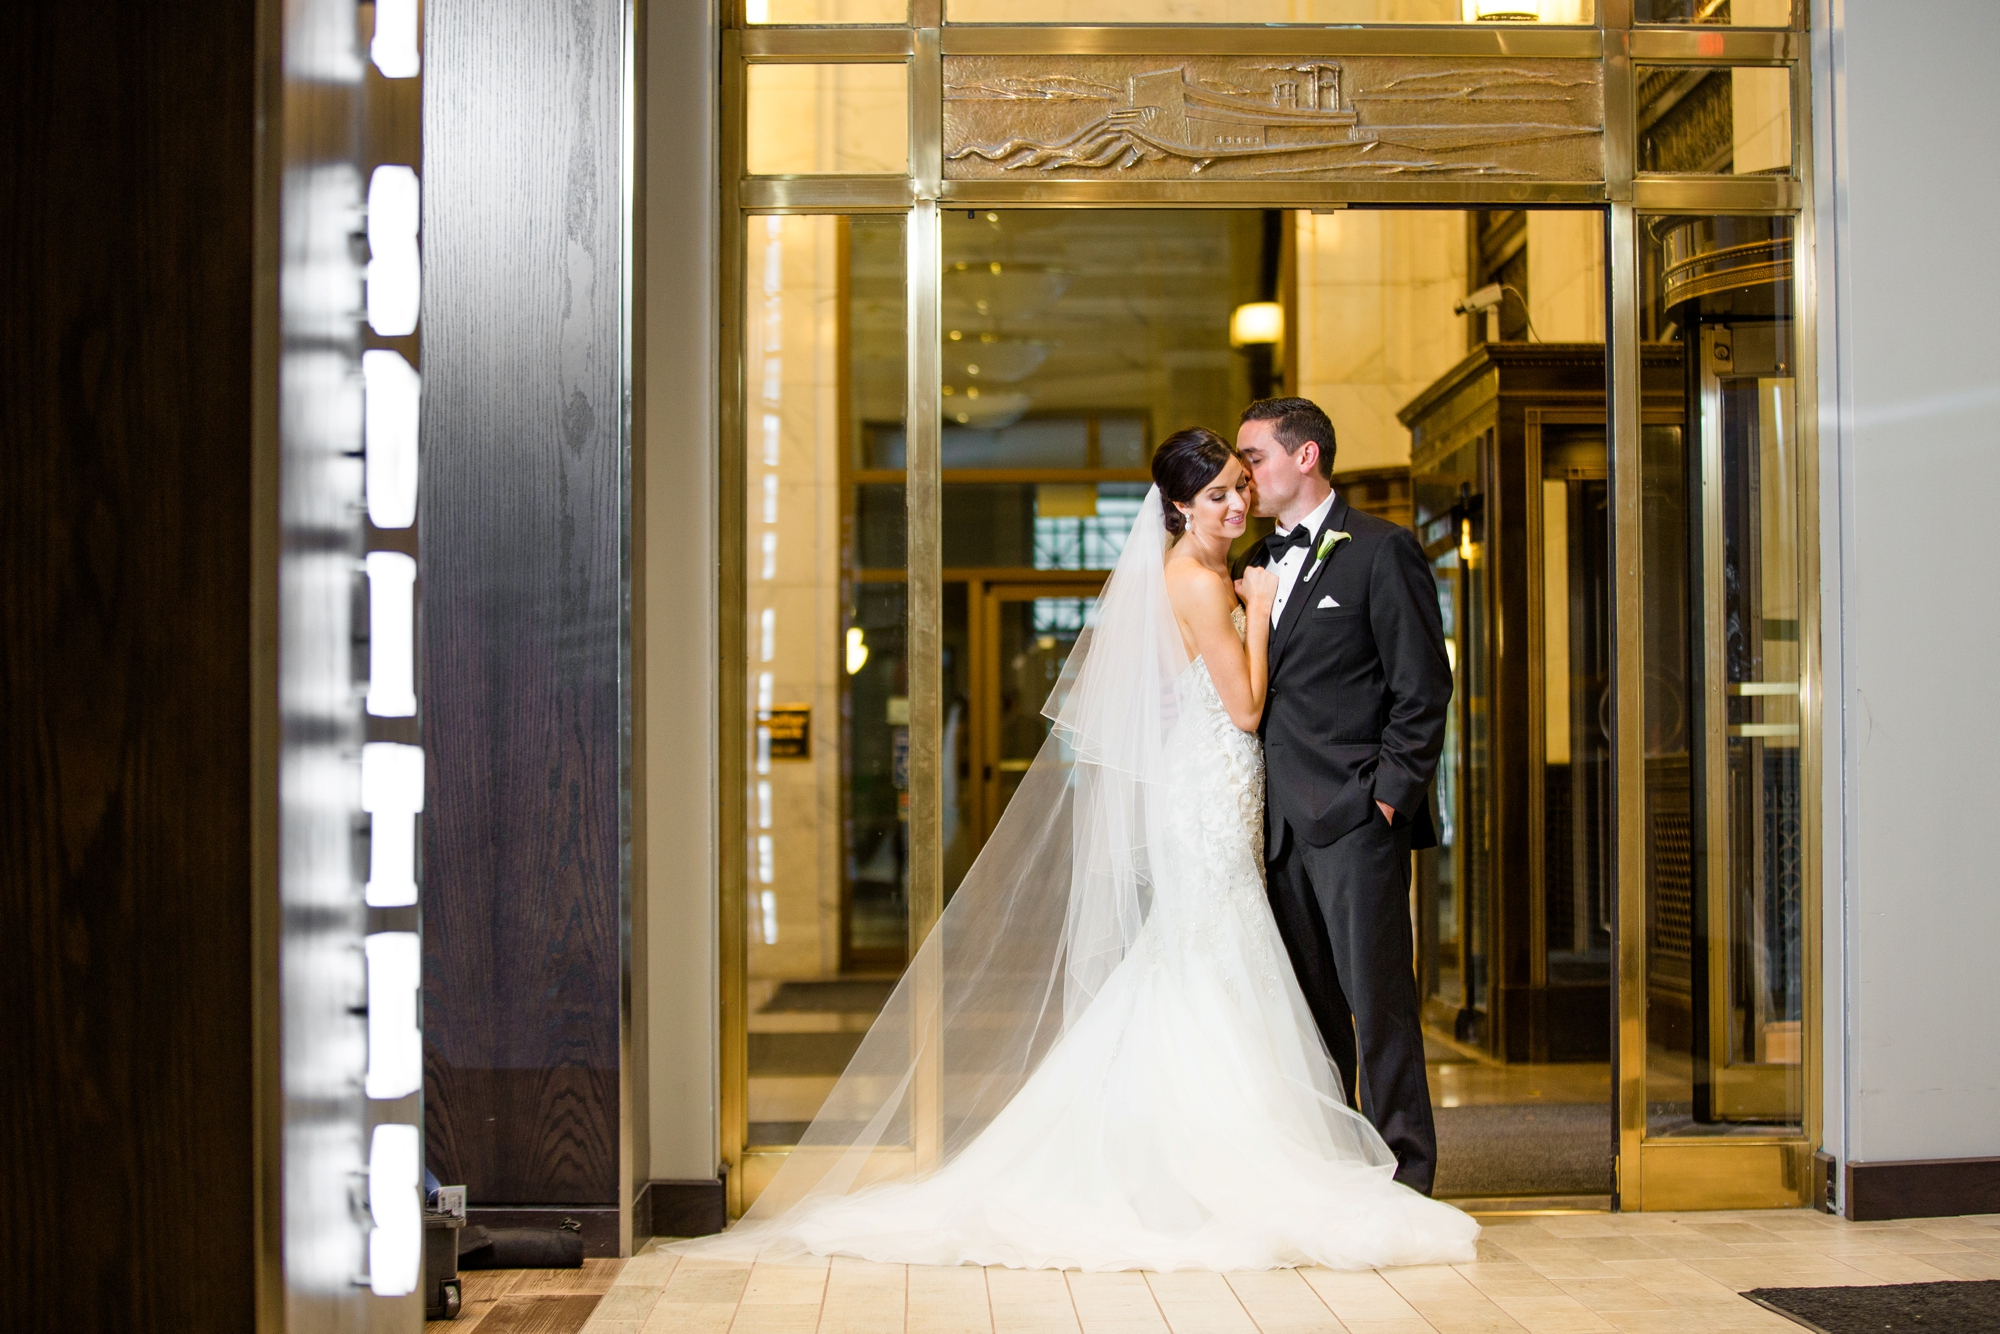 Embassy suites downtown pittsburgh favorite pittsburgh wedding embassy suites downtown pittsburgh favorite pittsburgh wedding venues junglespirit Gallery